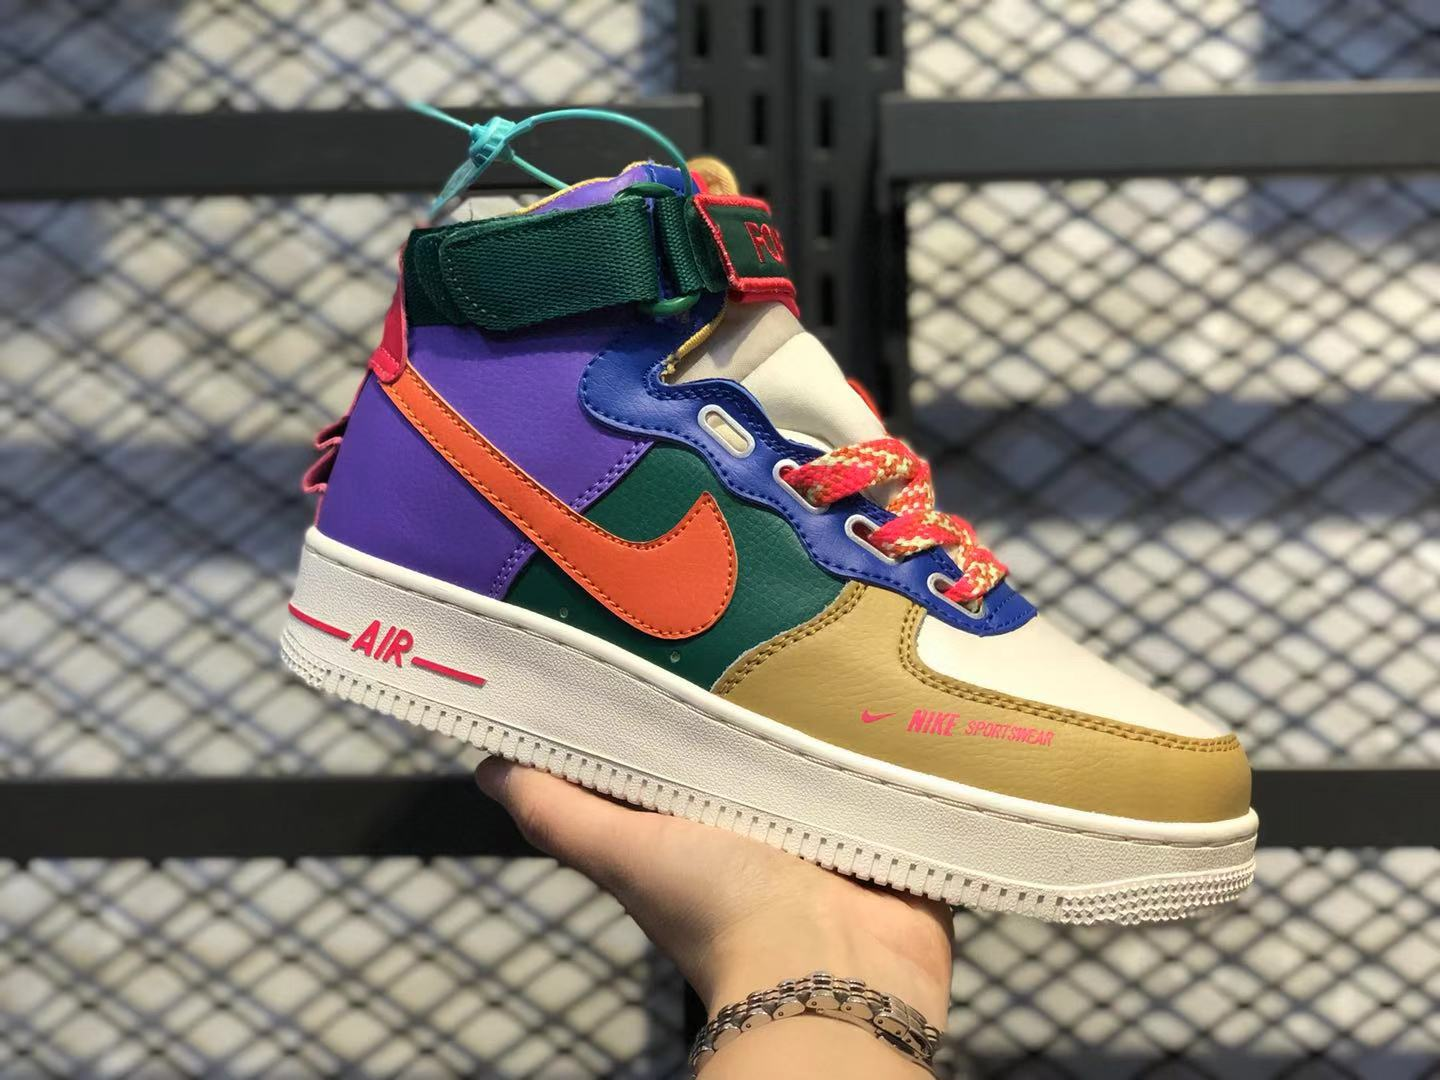 Nike Wmns Air Force 1 High Utility Multi-Color Sneakers Hot Sale CQ4810-046